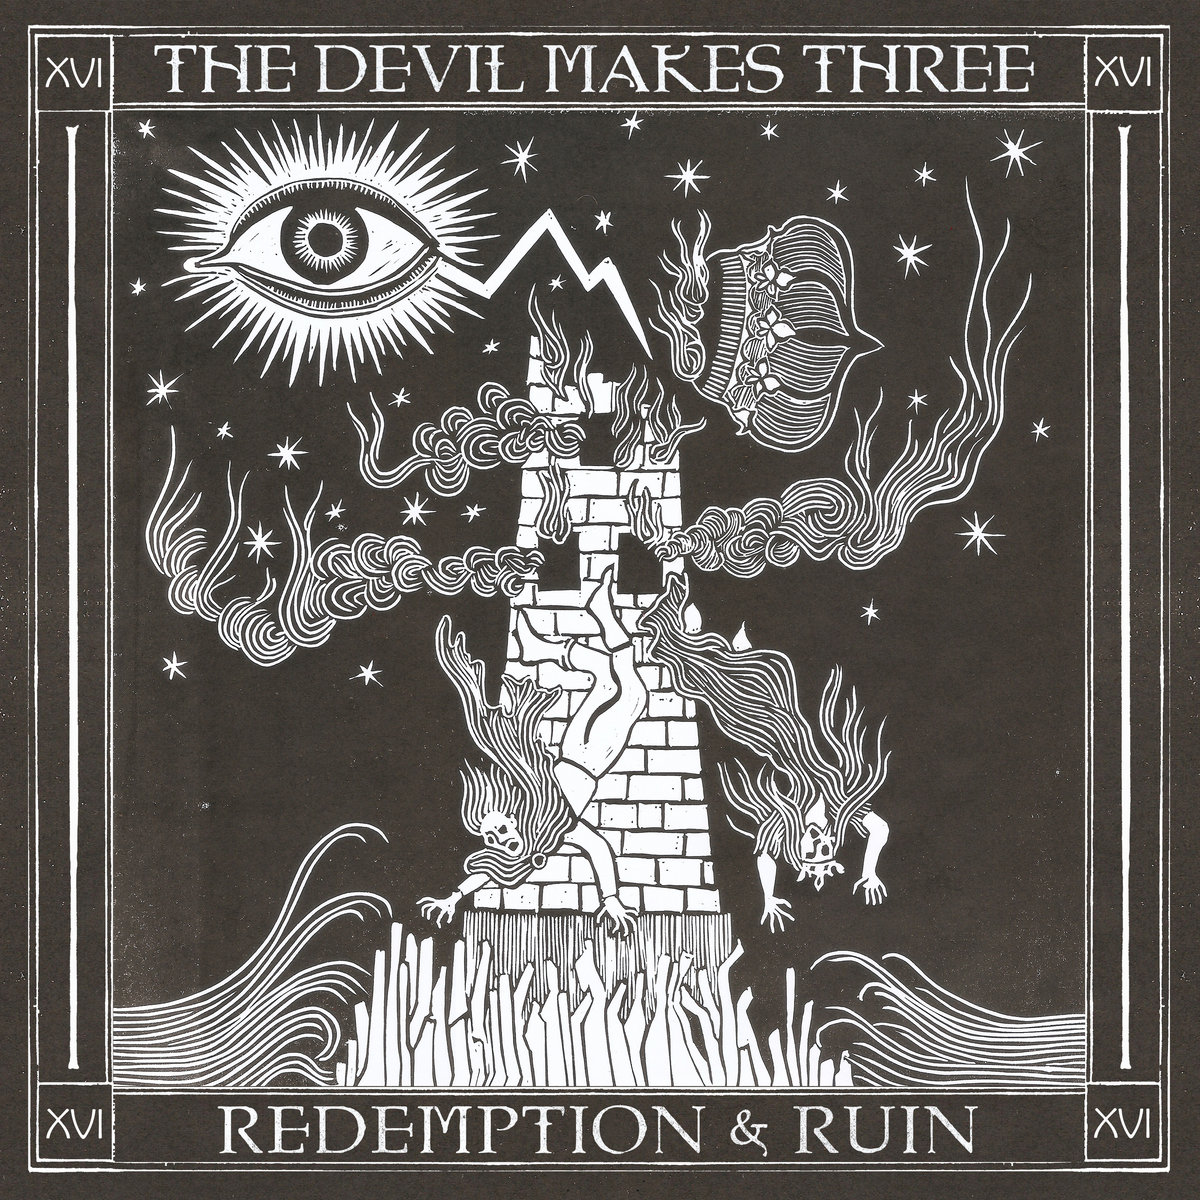 redemption ruin the devil makes three redemption ruin